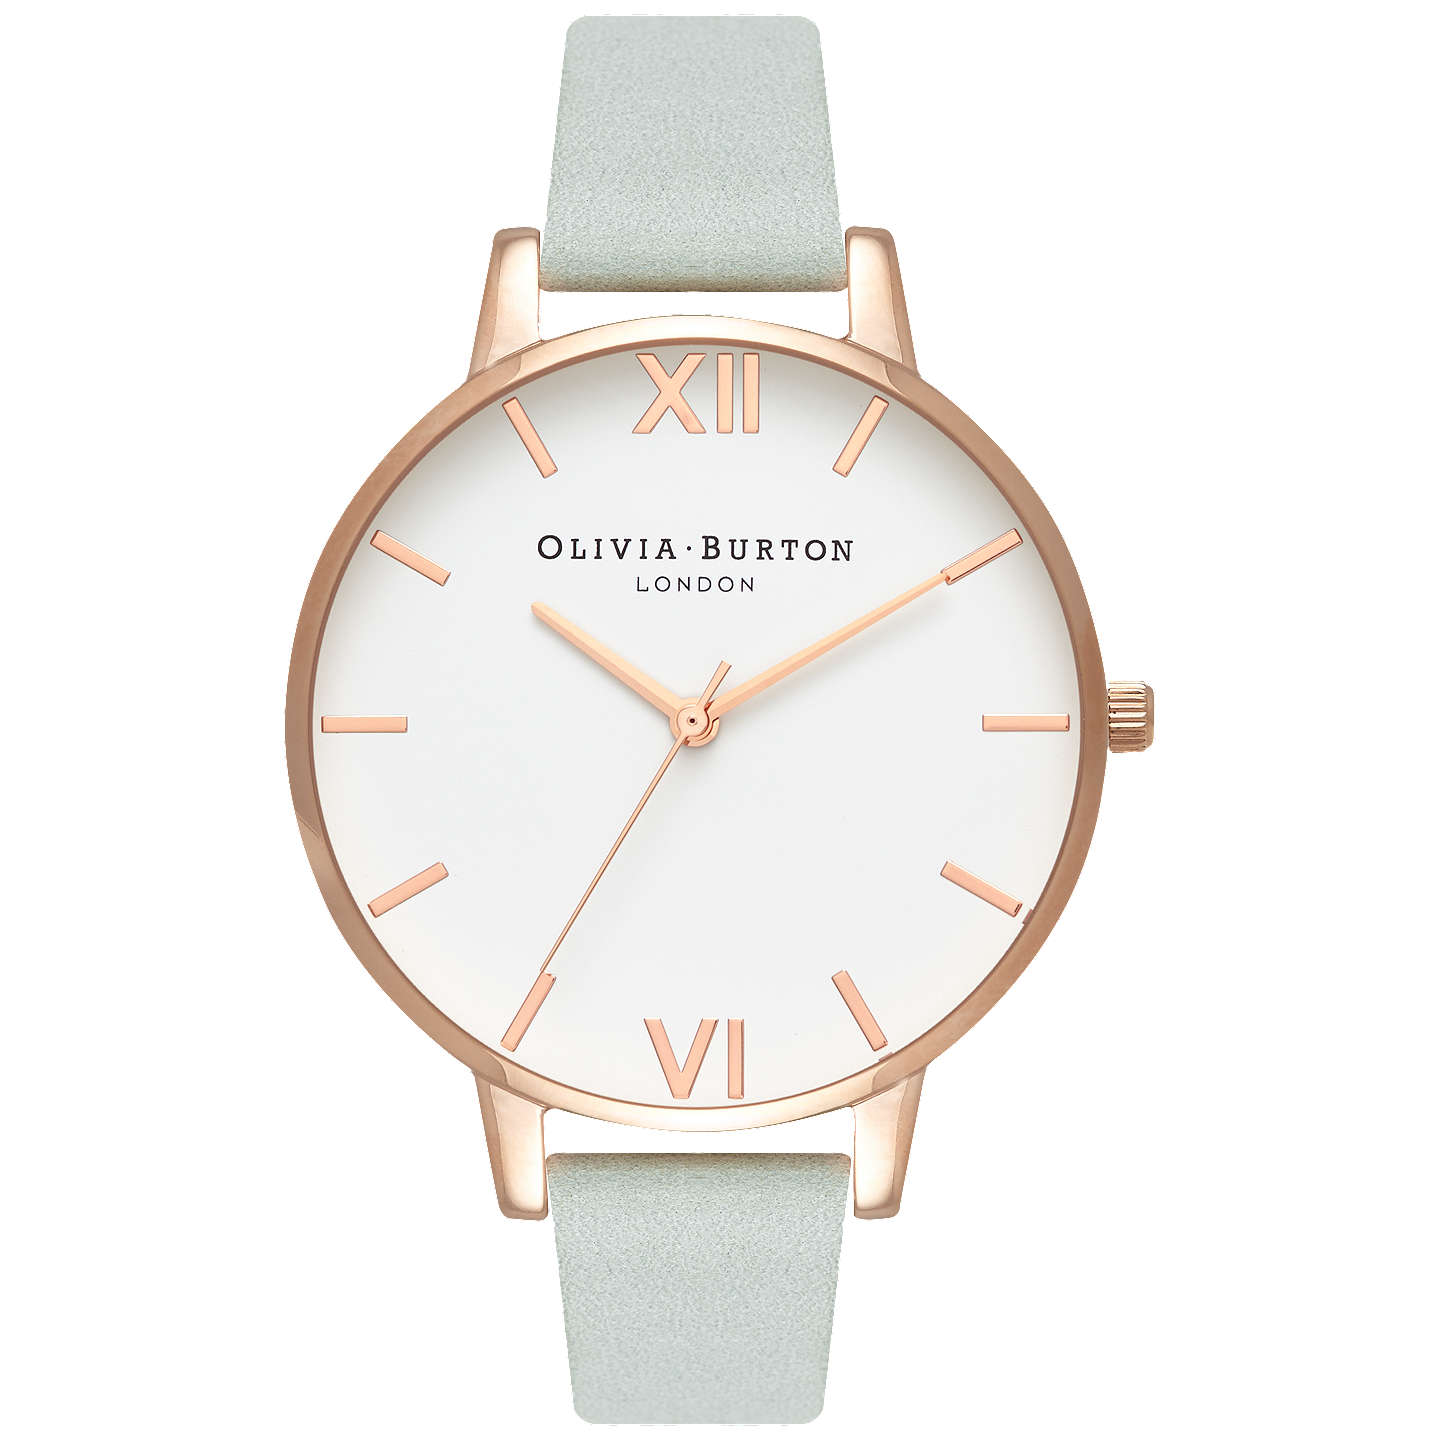 Olivia Burton Women's White Dial Leather Strap Watch, Sage Ob16 Bdw36 by Olivia Burton